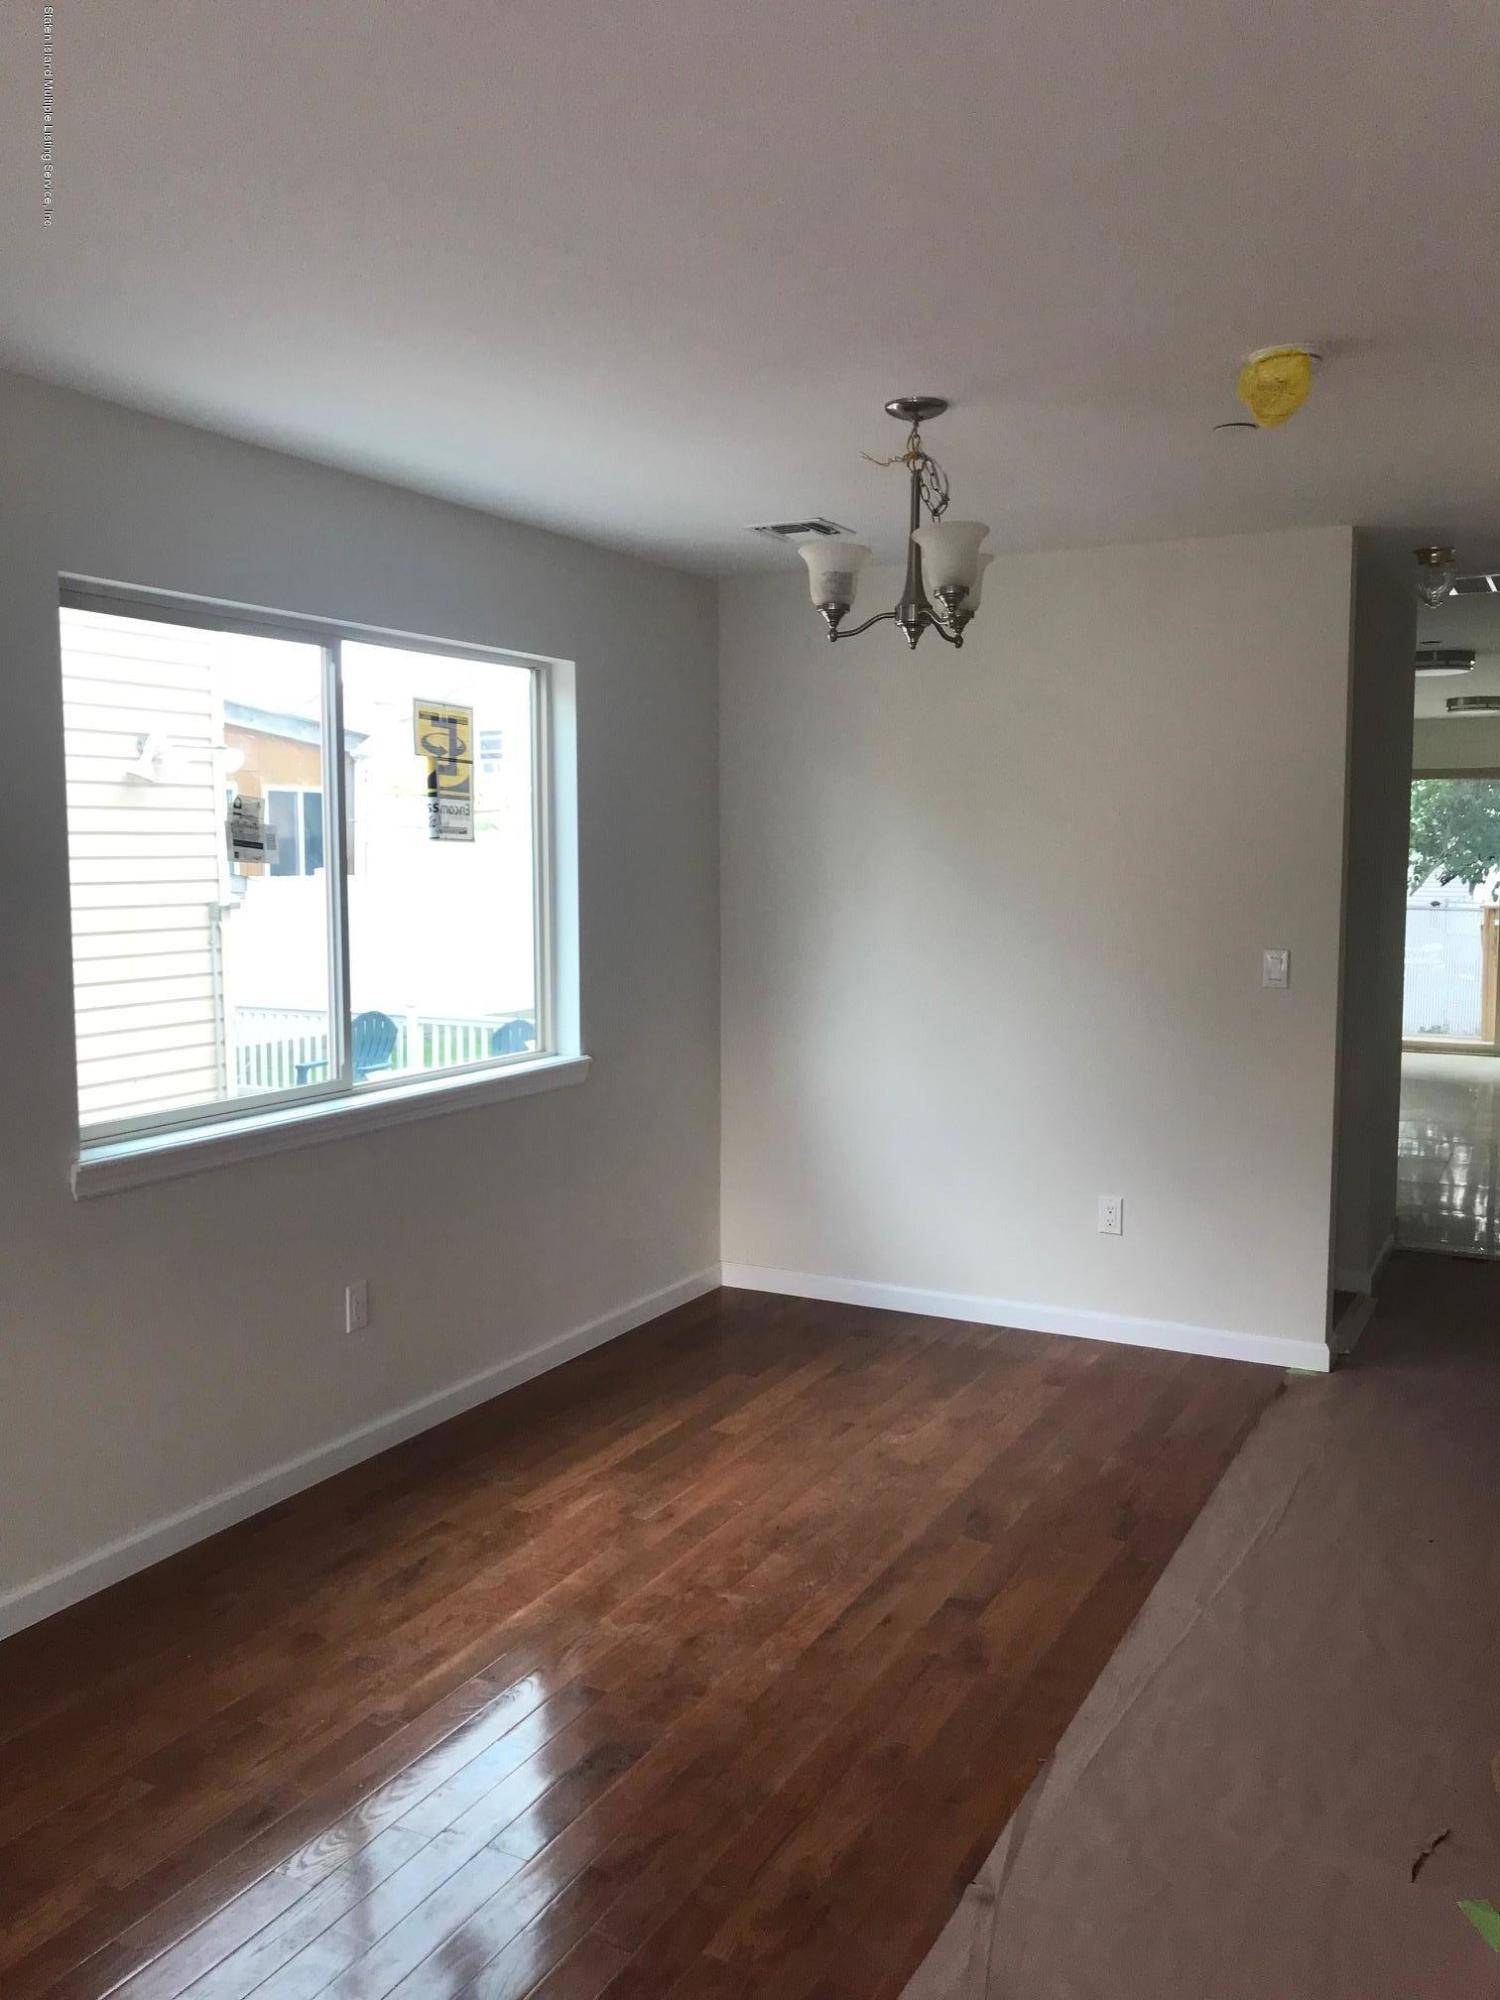 Single Family - Semi-Attached 8 Summerfield Place  Staten Island, NY 10303, MLS-1125803-14